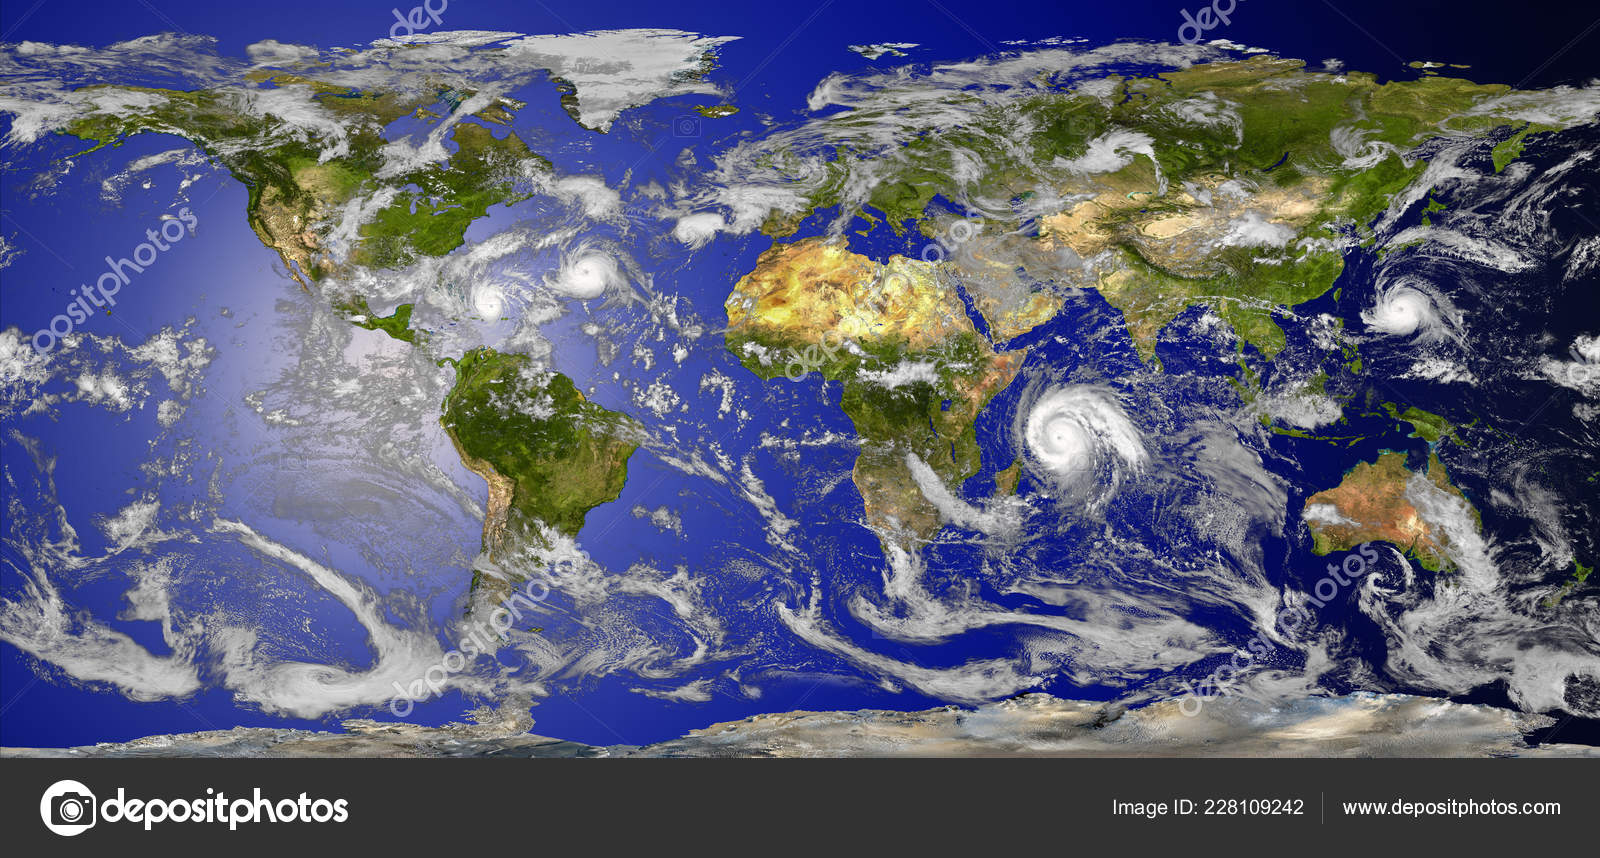 Hurricanes World Map.World Map Clouds Tropical Hurricanes Elements Image Furnished Nasa